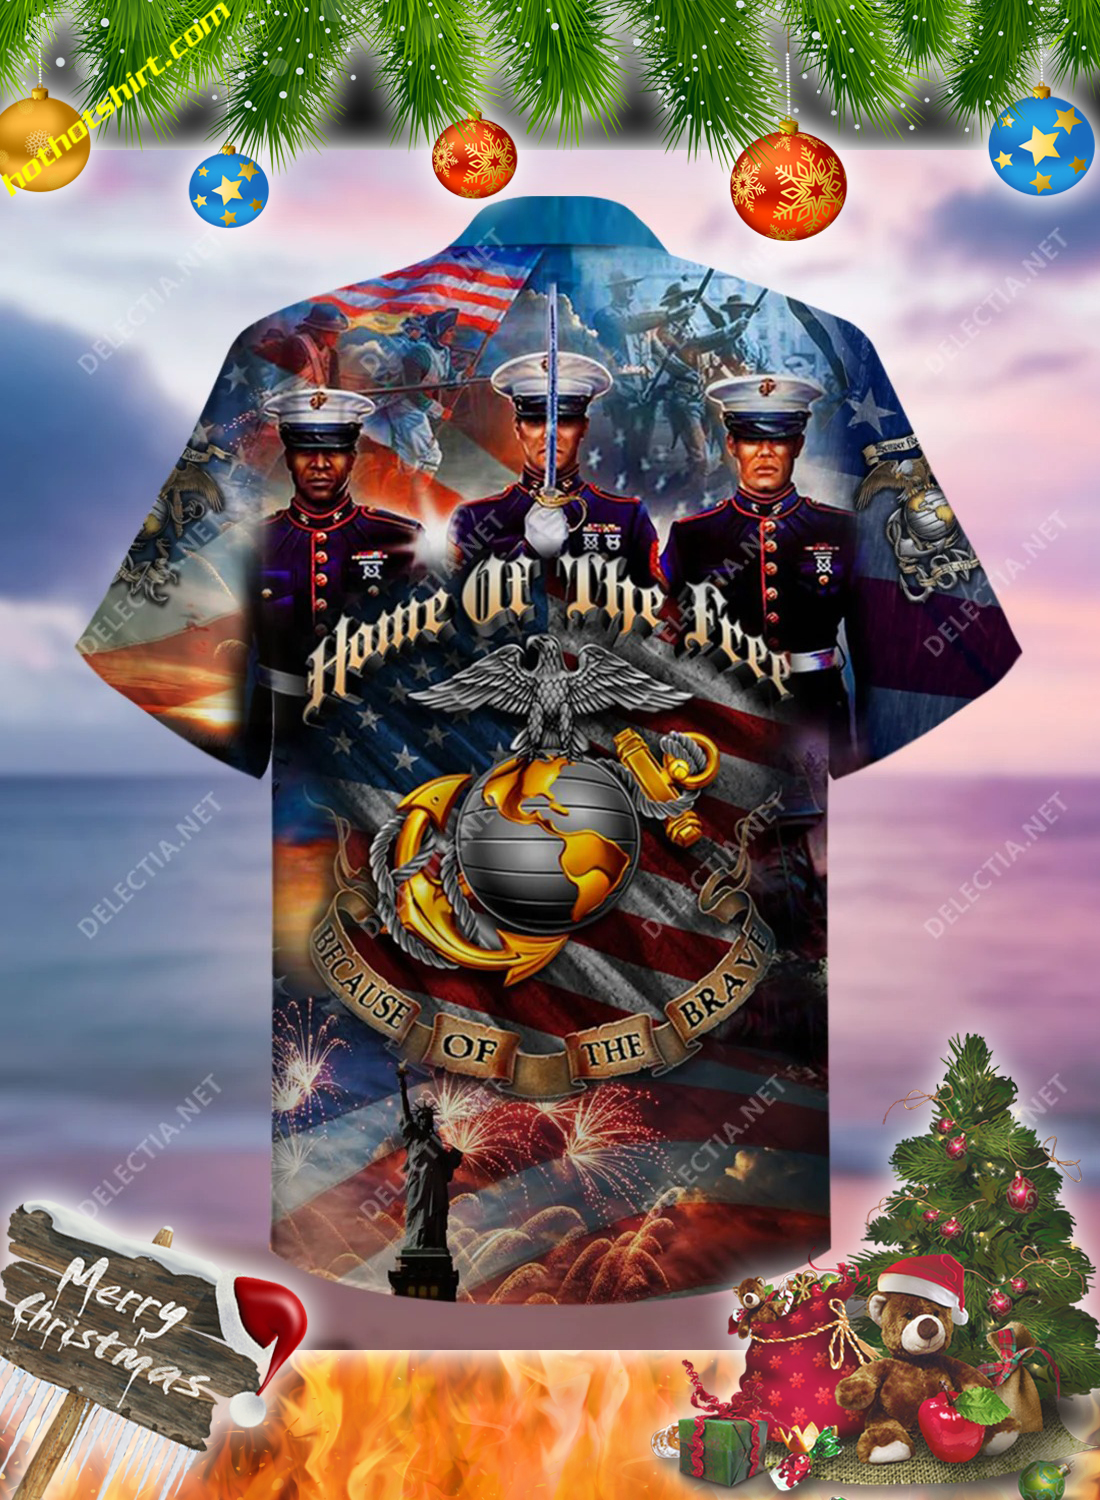 Home of the free because of the brave USMC hawaiian shirt 2